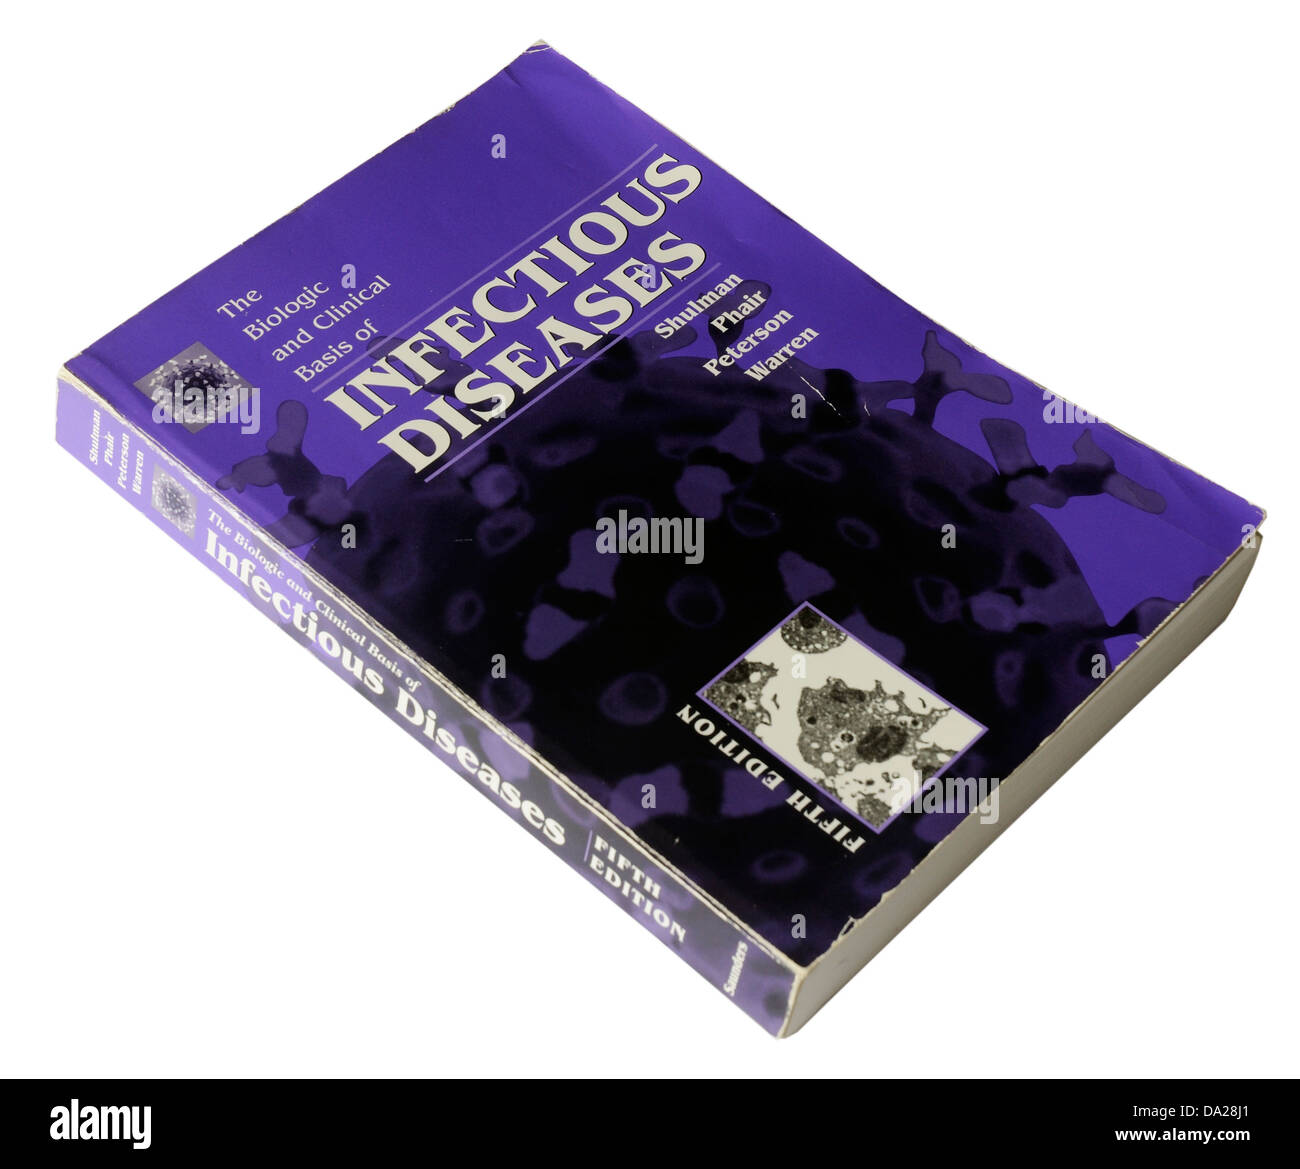 Infectious Diseases medical text book - Stock Image